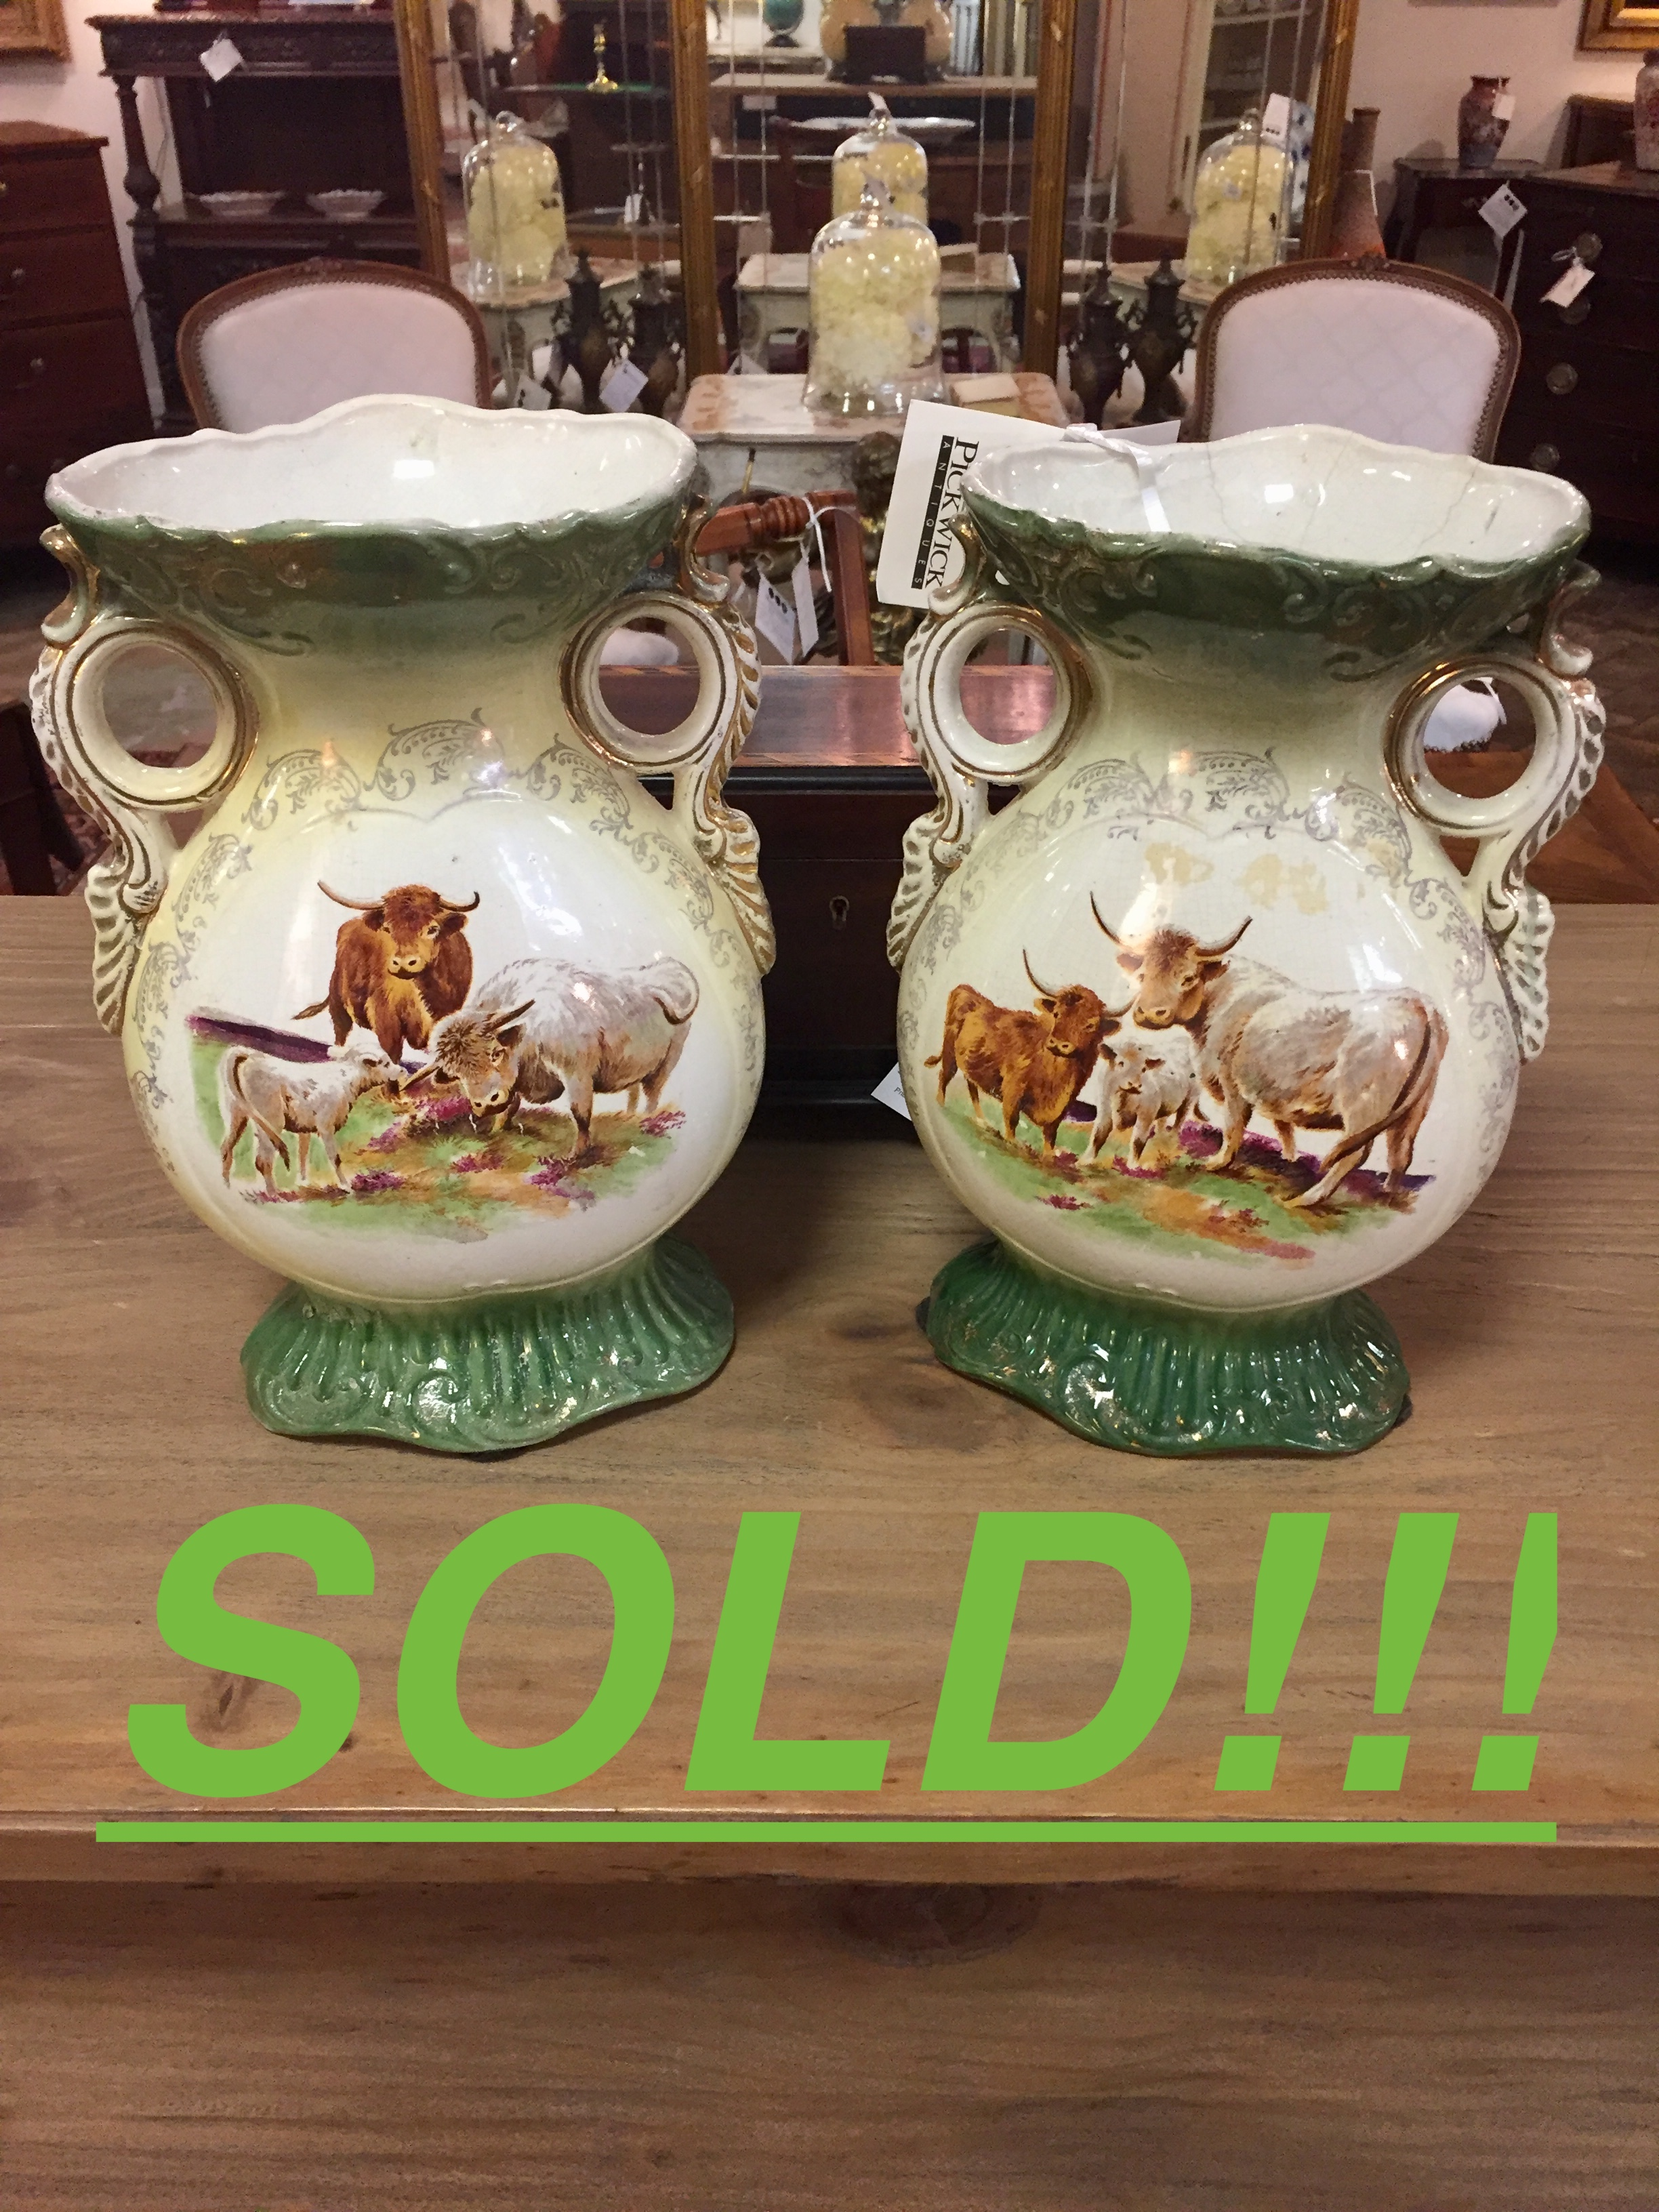 A Pair of Double Handled Porcelain Vases with Cow Decorations  (SOLD)